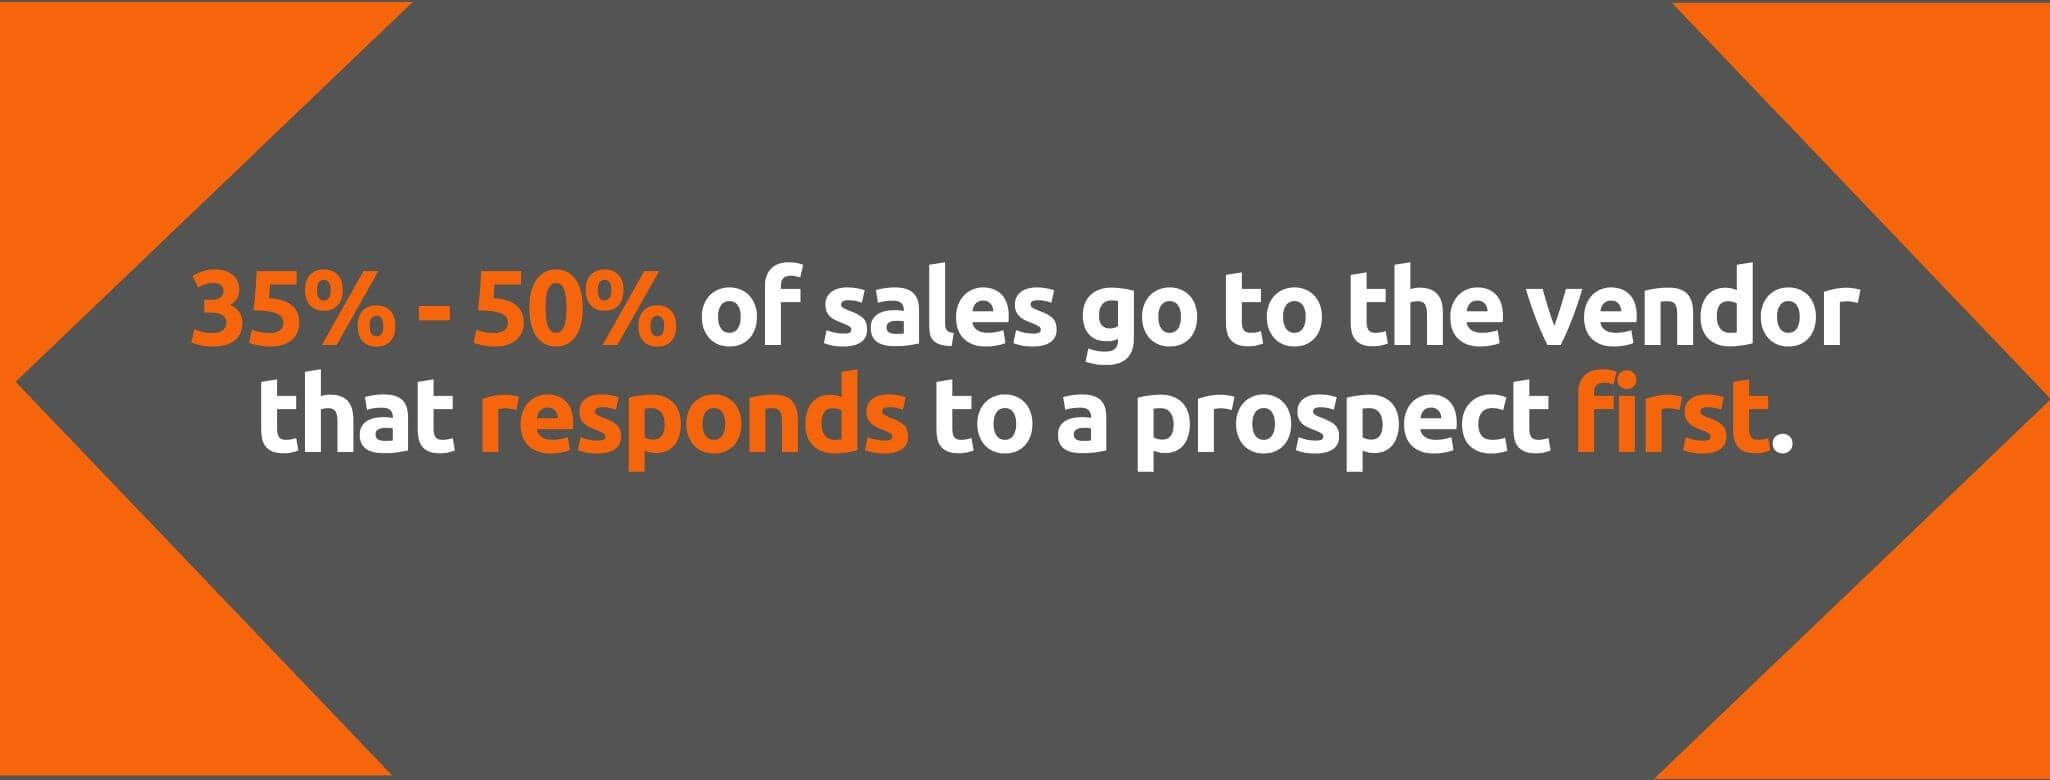 35% to 50% of sales go to the vendor who responds to a prospect first - 91 Sales Stats You Can't Afford to Miss - Replyco Helpdesk Software for eCommerce